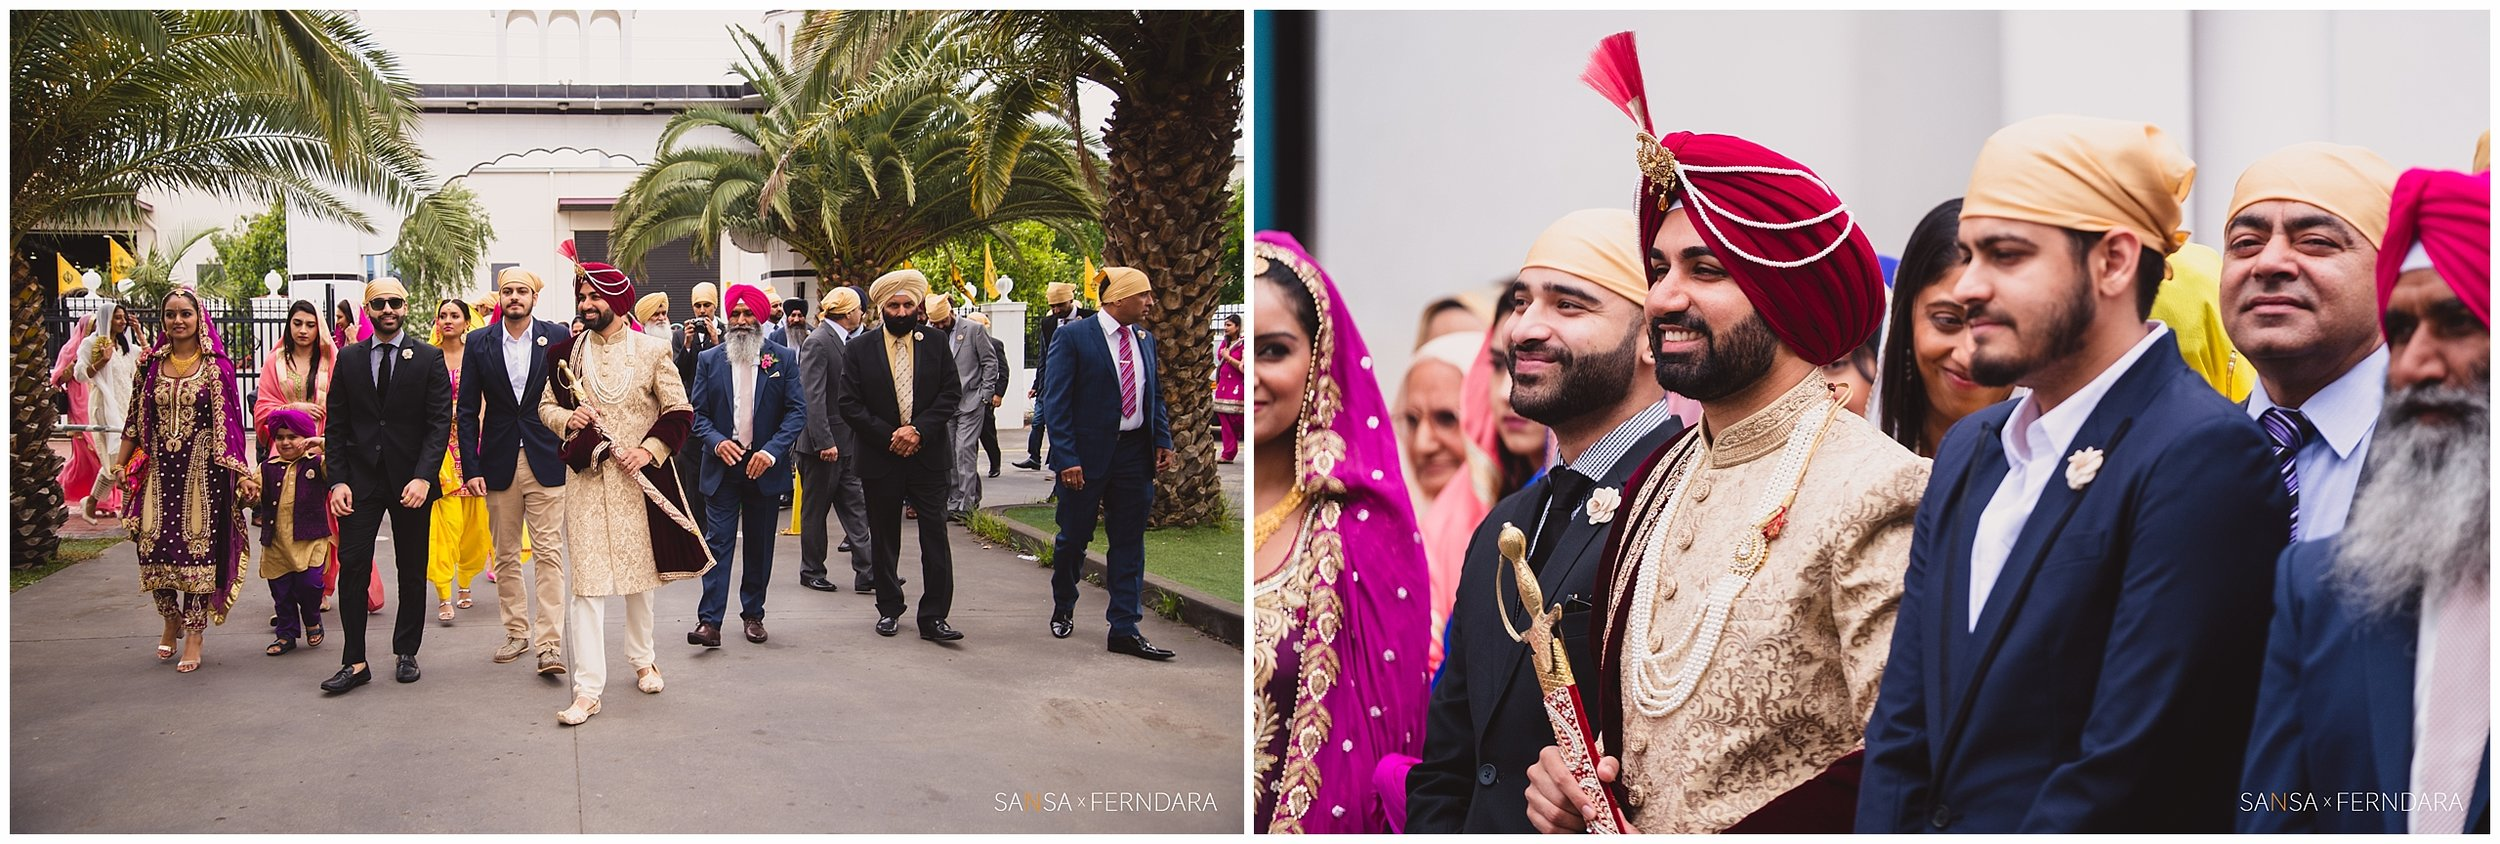 Choose any location or style and Ferndara is there to do Indian wedding photography.